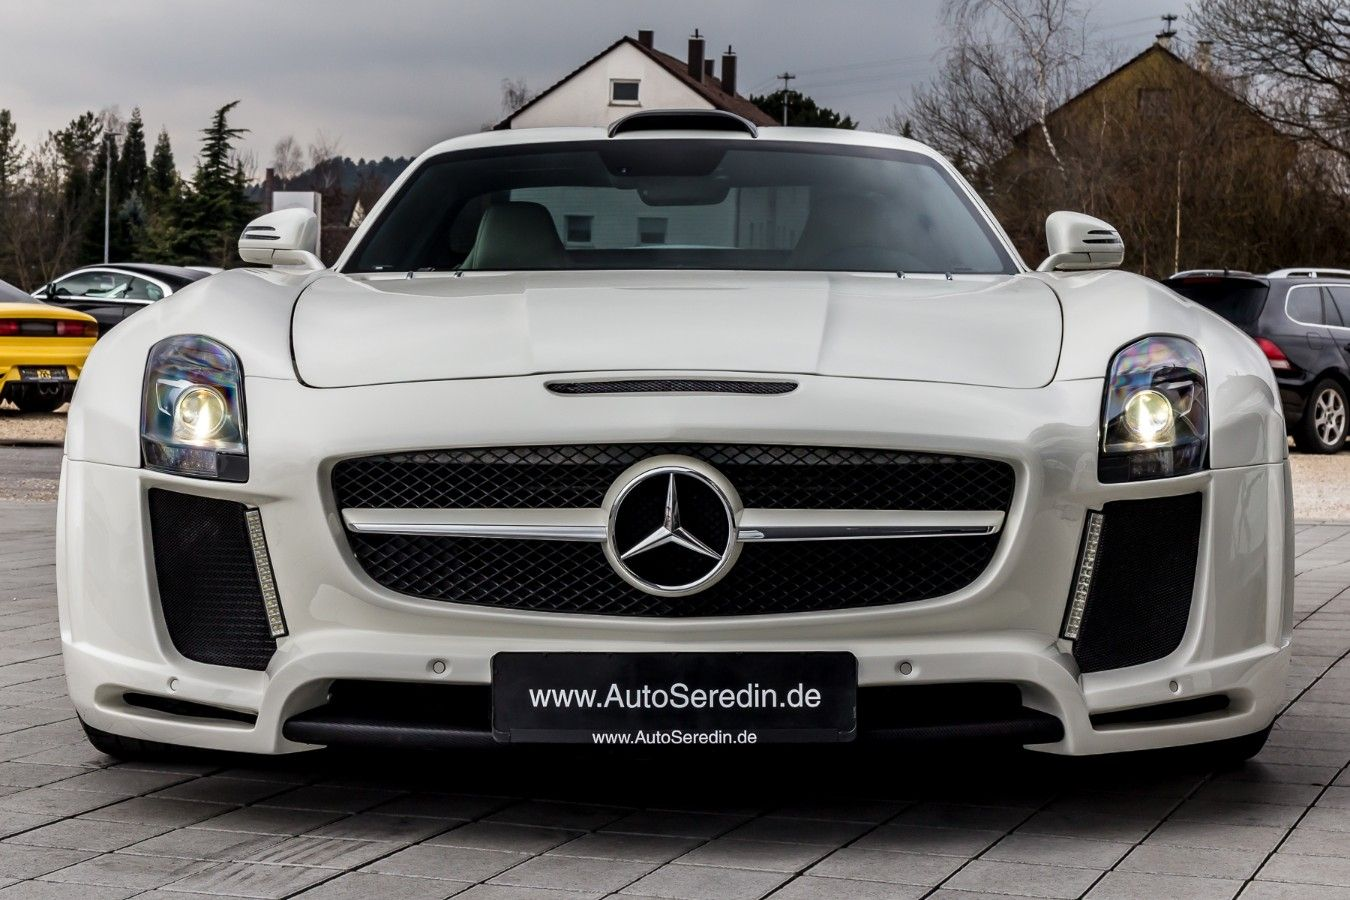 Mercedes Benz Sls Amg Coupe Ceramic B O Fab One Of Five Export Price 232 050 Stosk B262 Fuel Consumption In Town 13 2 L 10 Mit Bildern Mercedes Benz